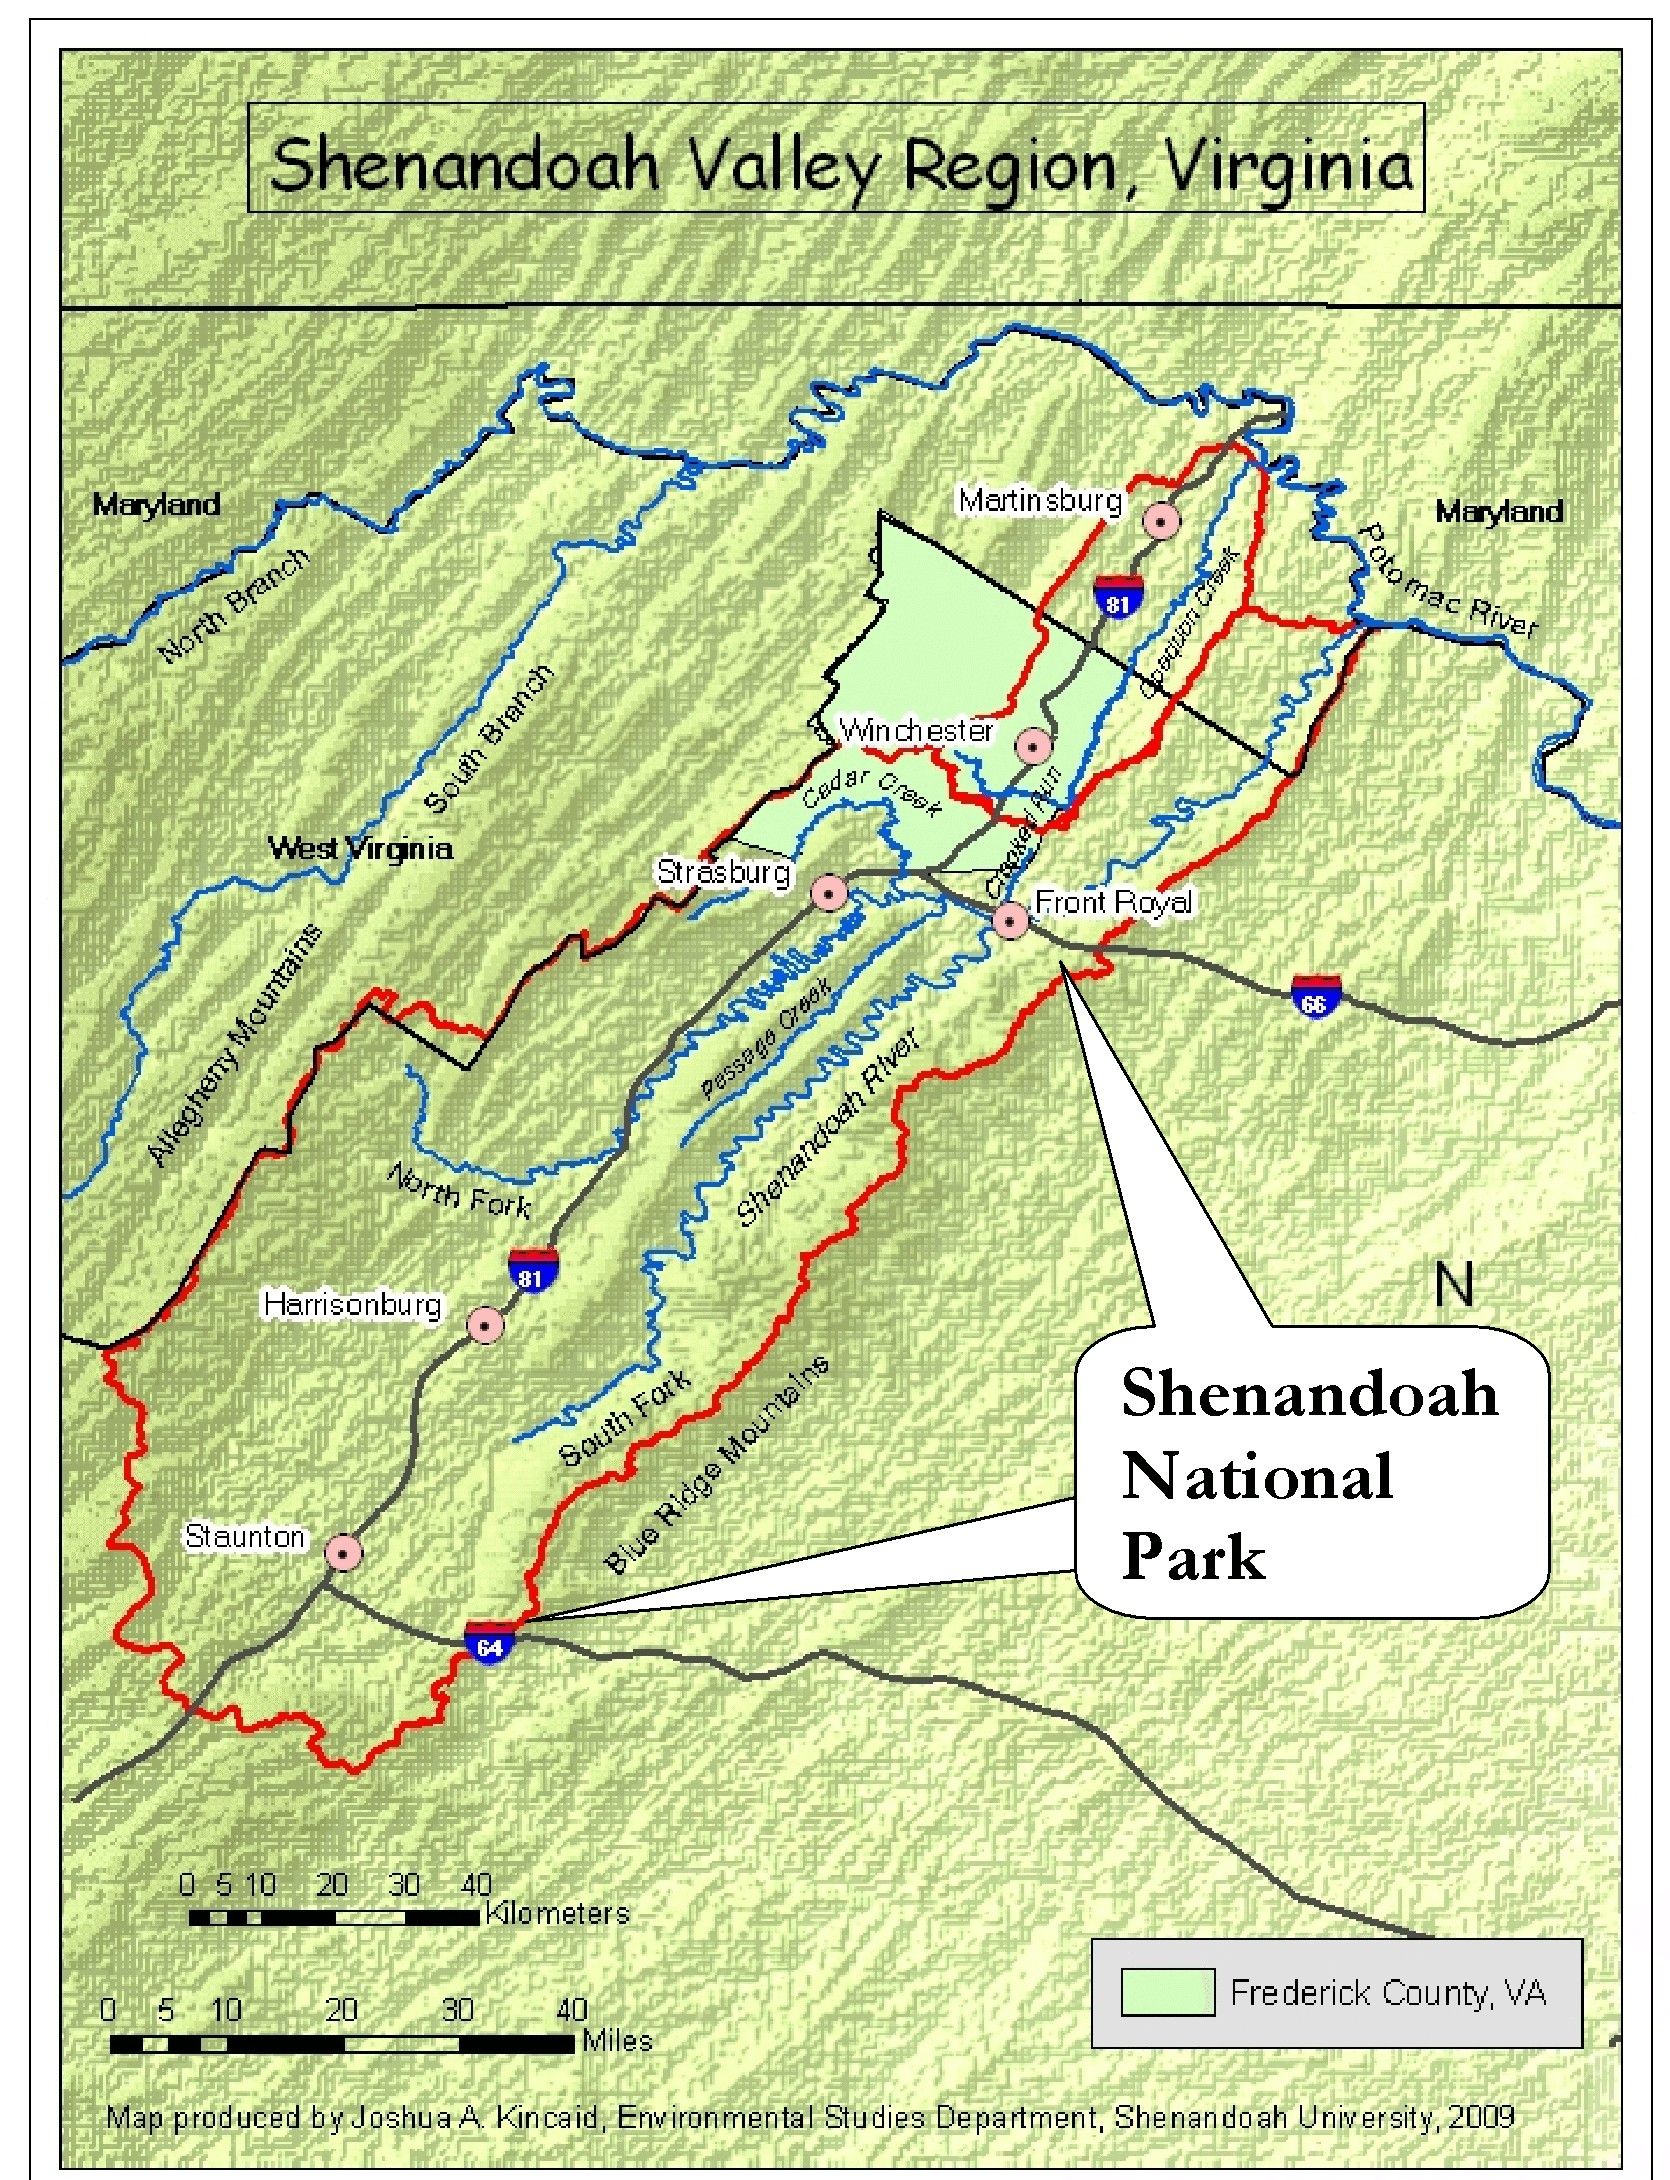 Shenandoah National Park | SU BRIES on westover map, wicomico map, starlight map, sherando map, massanutten map, winterset map, needville map, reserve map, brookshire map, grottoes map, windber map, brightmoor map, nottoway map, slatington map, medaille map, spotsylvania map, averett map, barataria map, chilhowie map, trail head map,